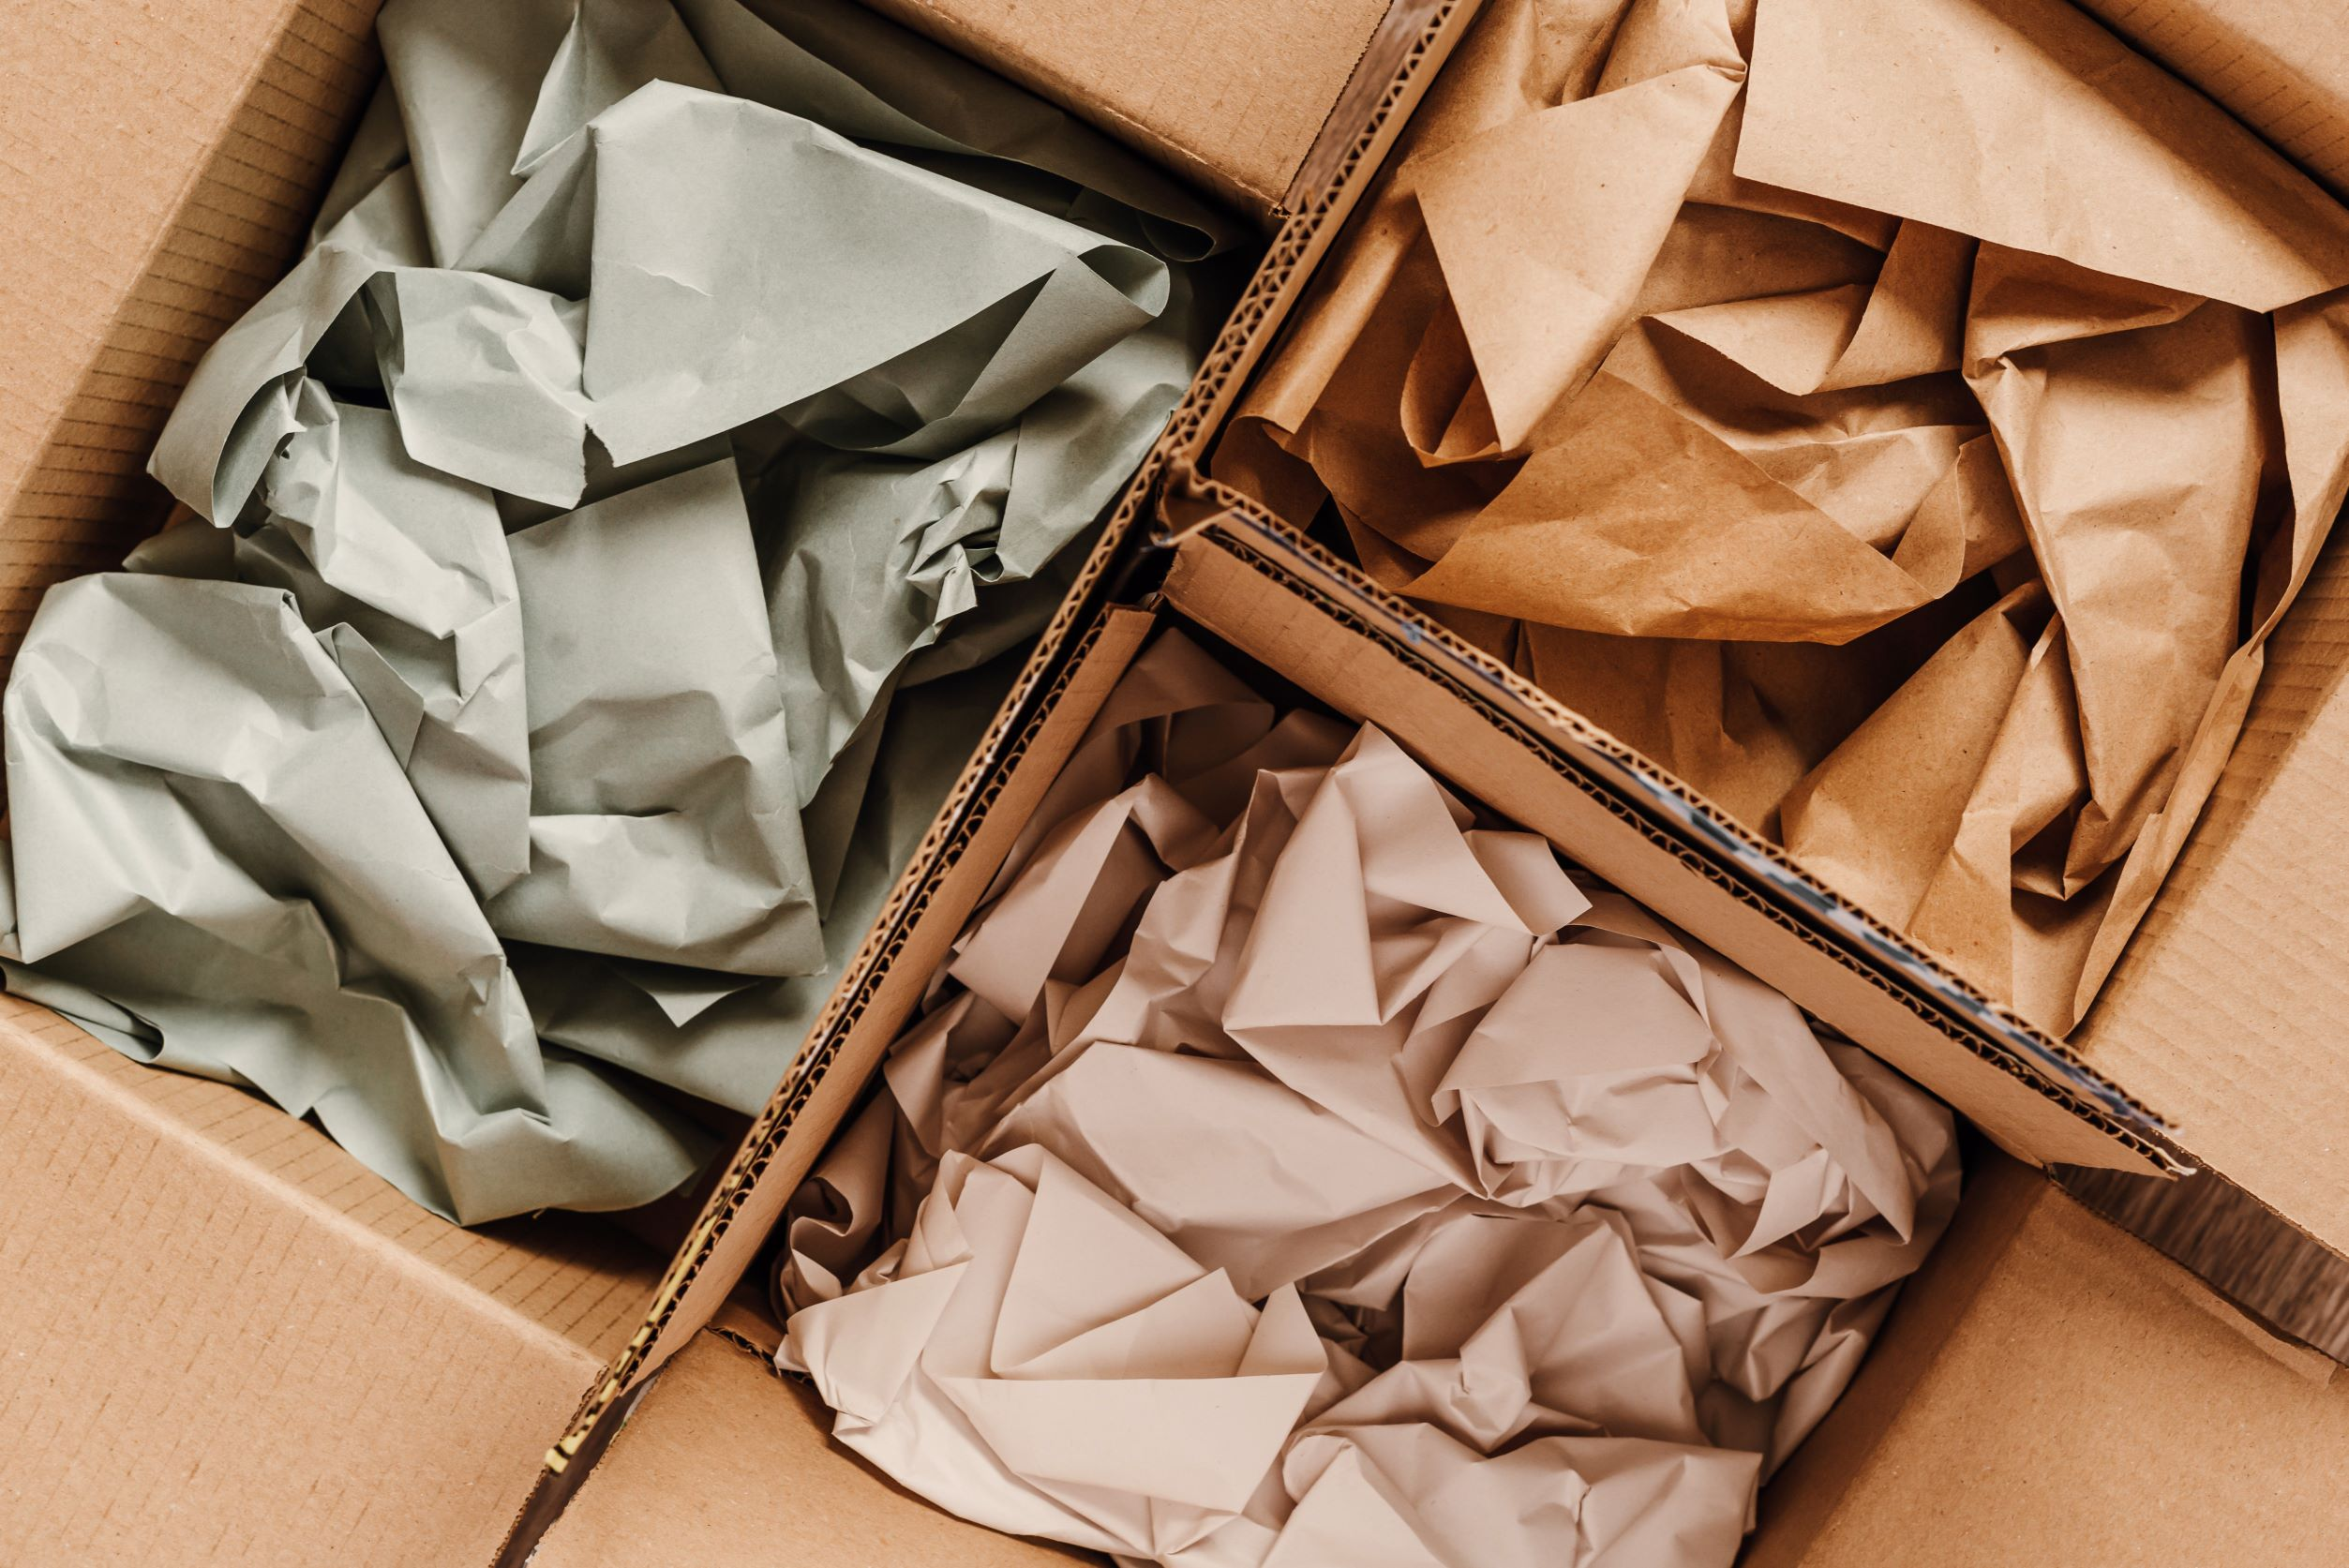 10 Packaging Materials For Your Growing Business